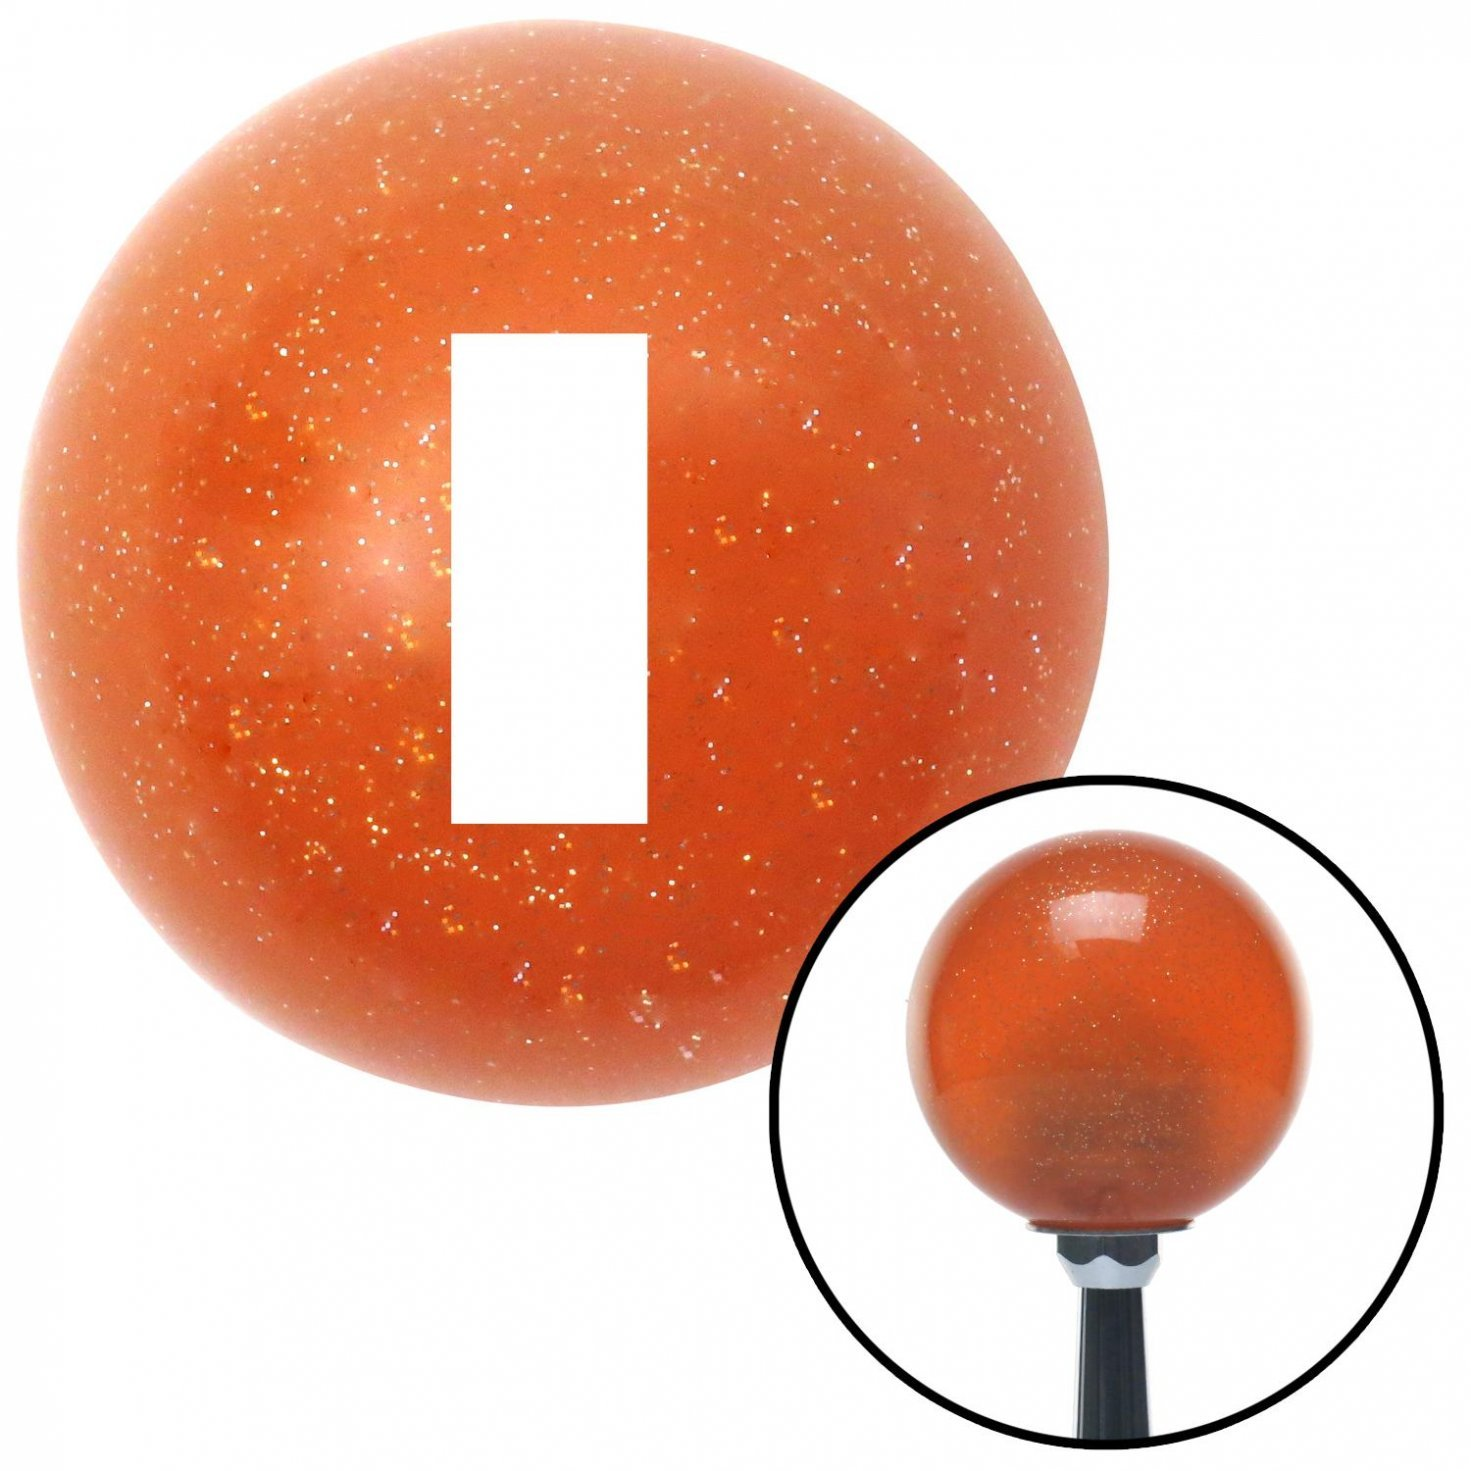 American Shifter 44658 Orange Metal Flake Shift Knob with 16mm x 1.5 Insert White Officer 01-2n Lt. and 1d Lt.